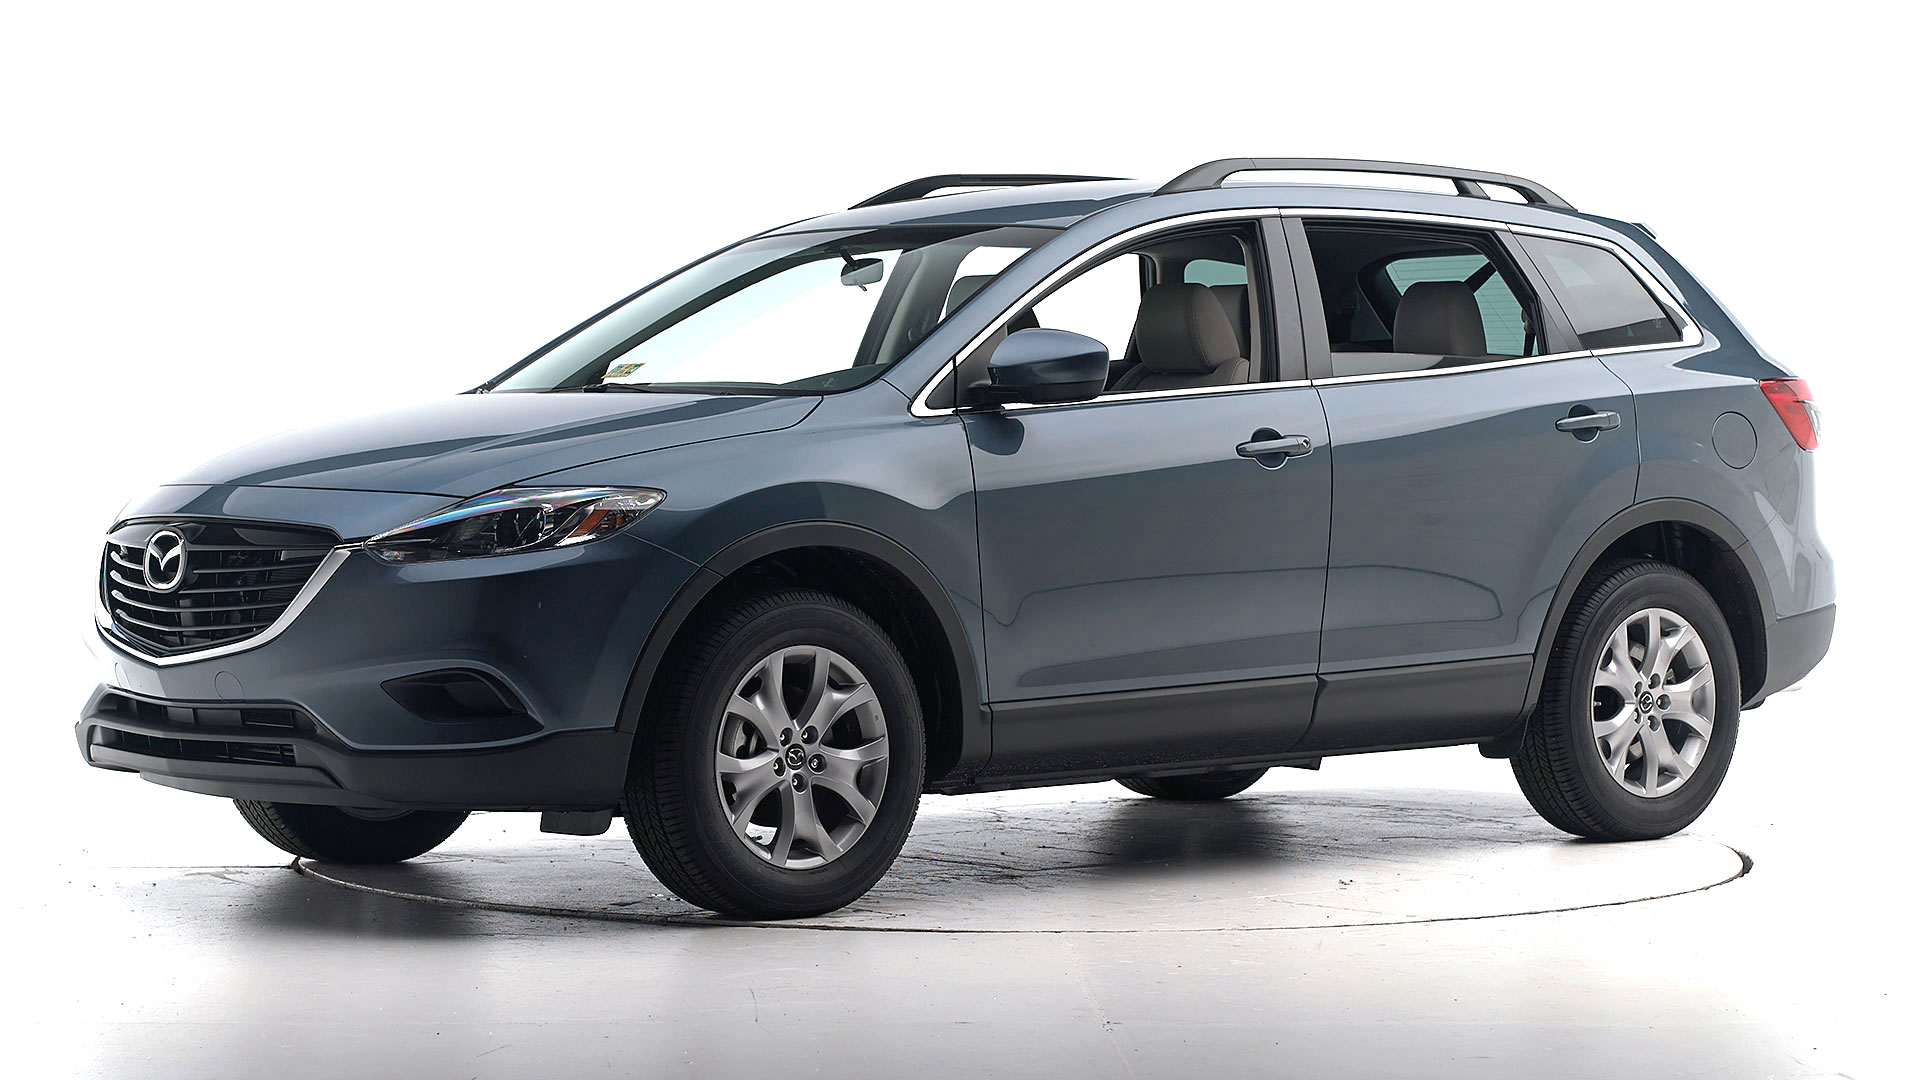 2014 Mazda CX-9 4-door SUV